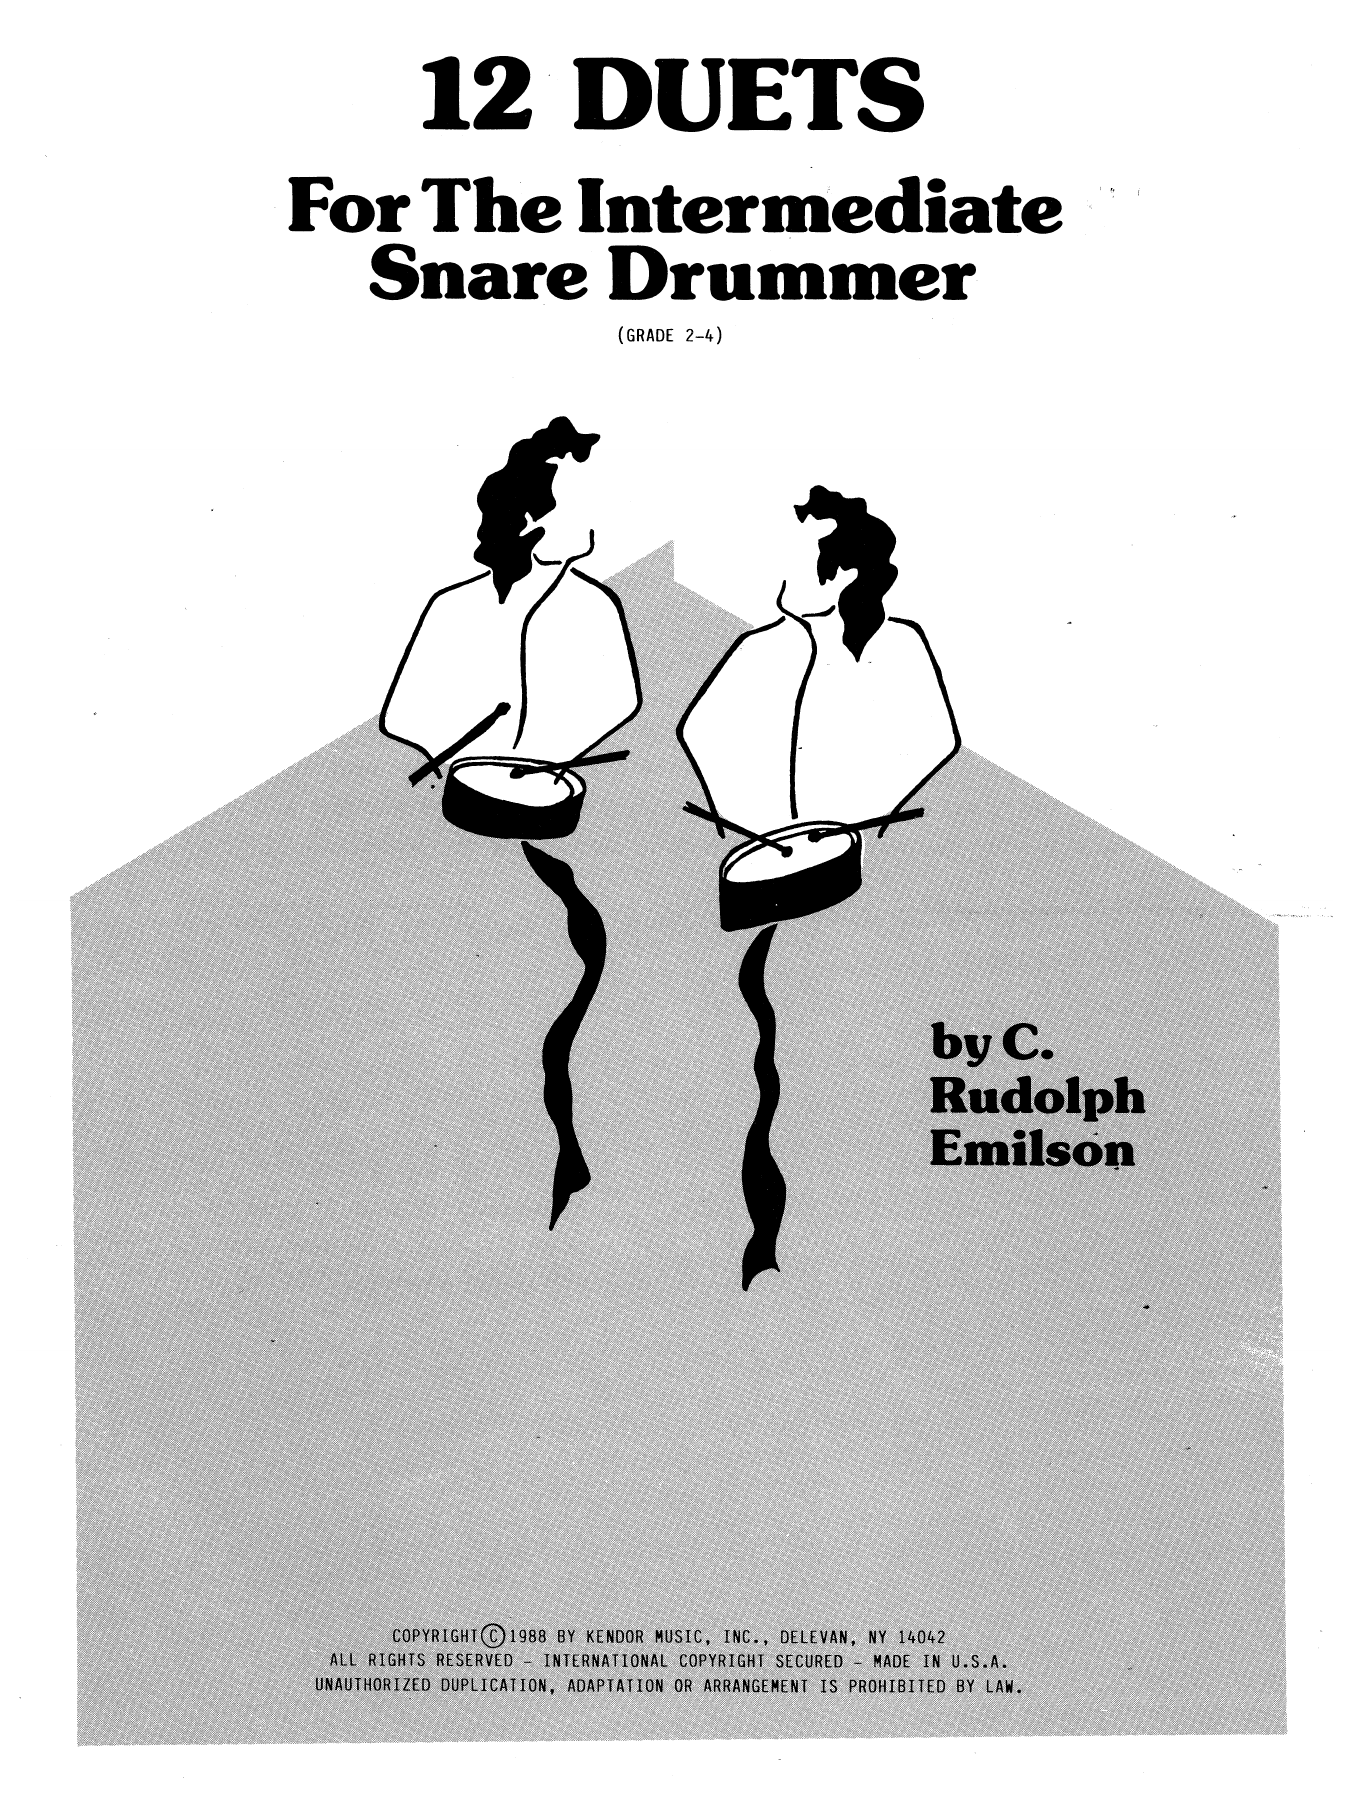 12 Duets For The Intermediate Snare Drummer Sheet Music